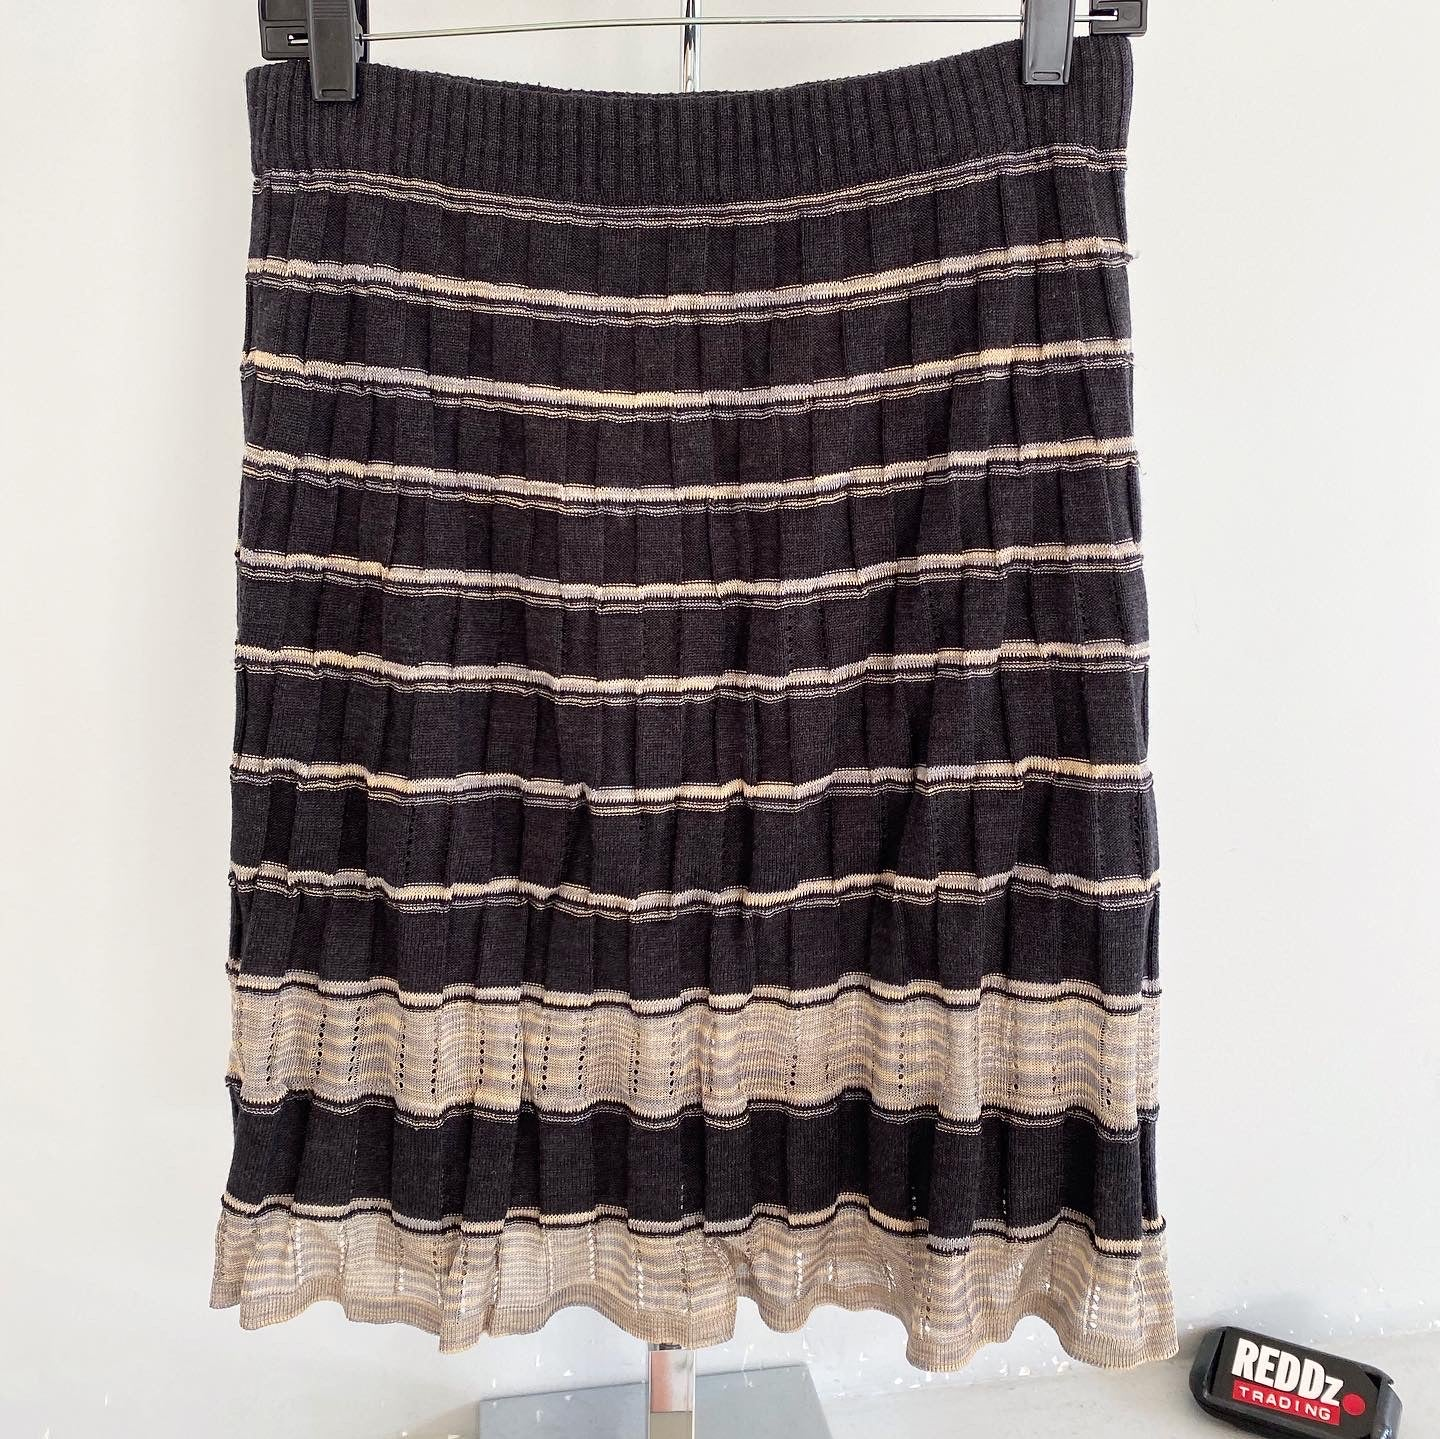 M Missoni Skirt Size US 6